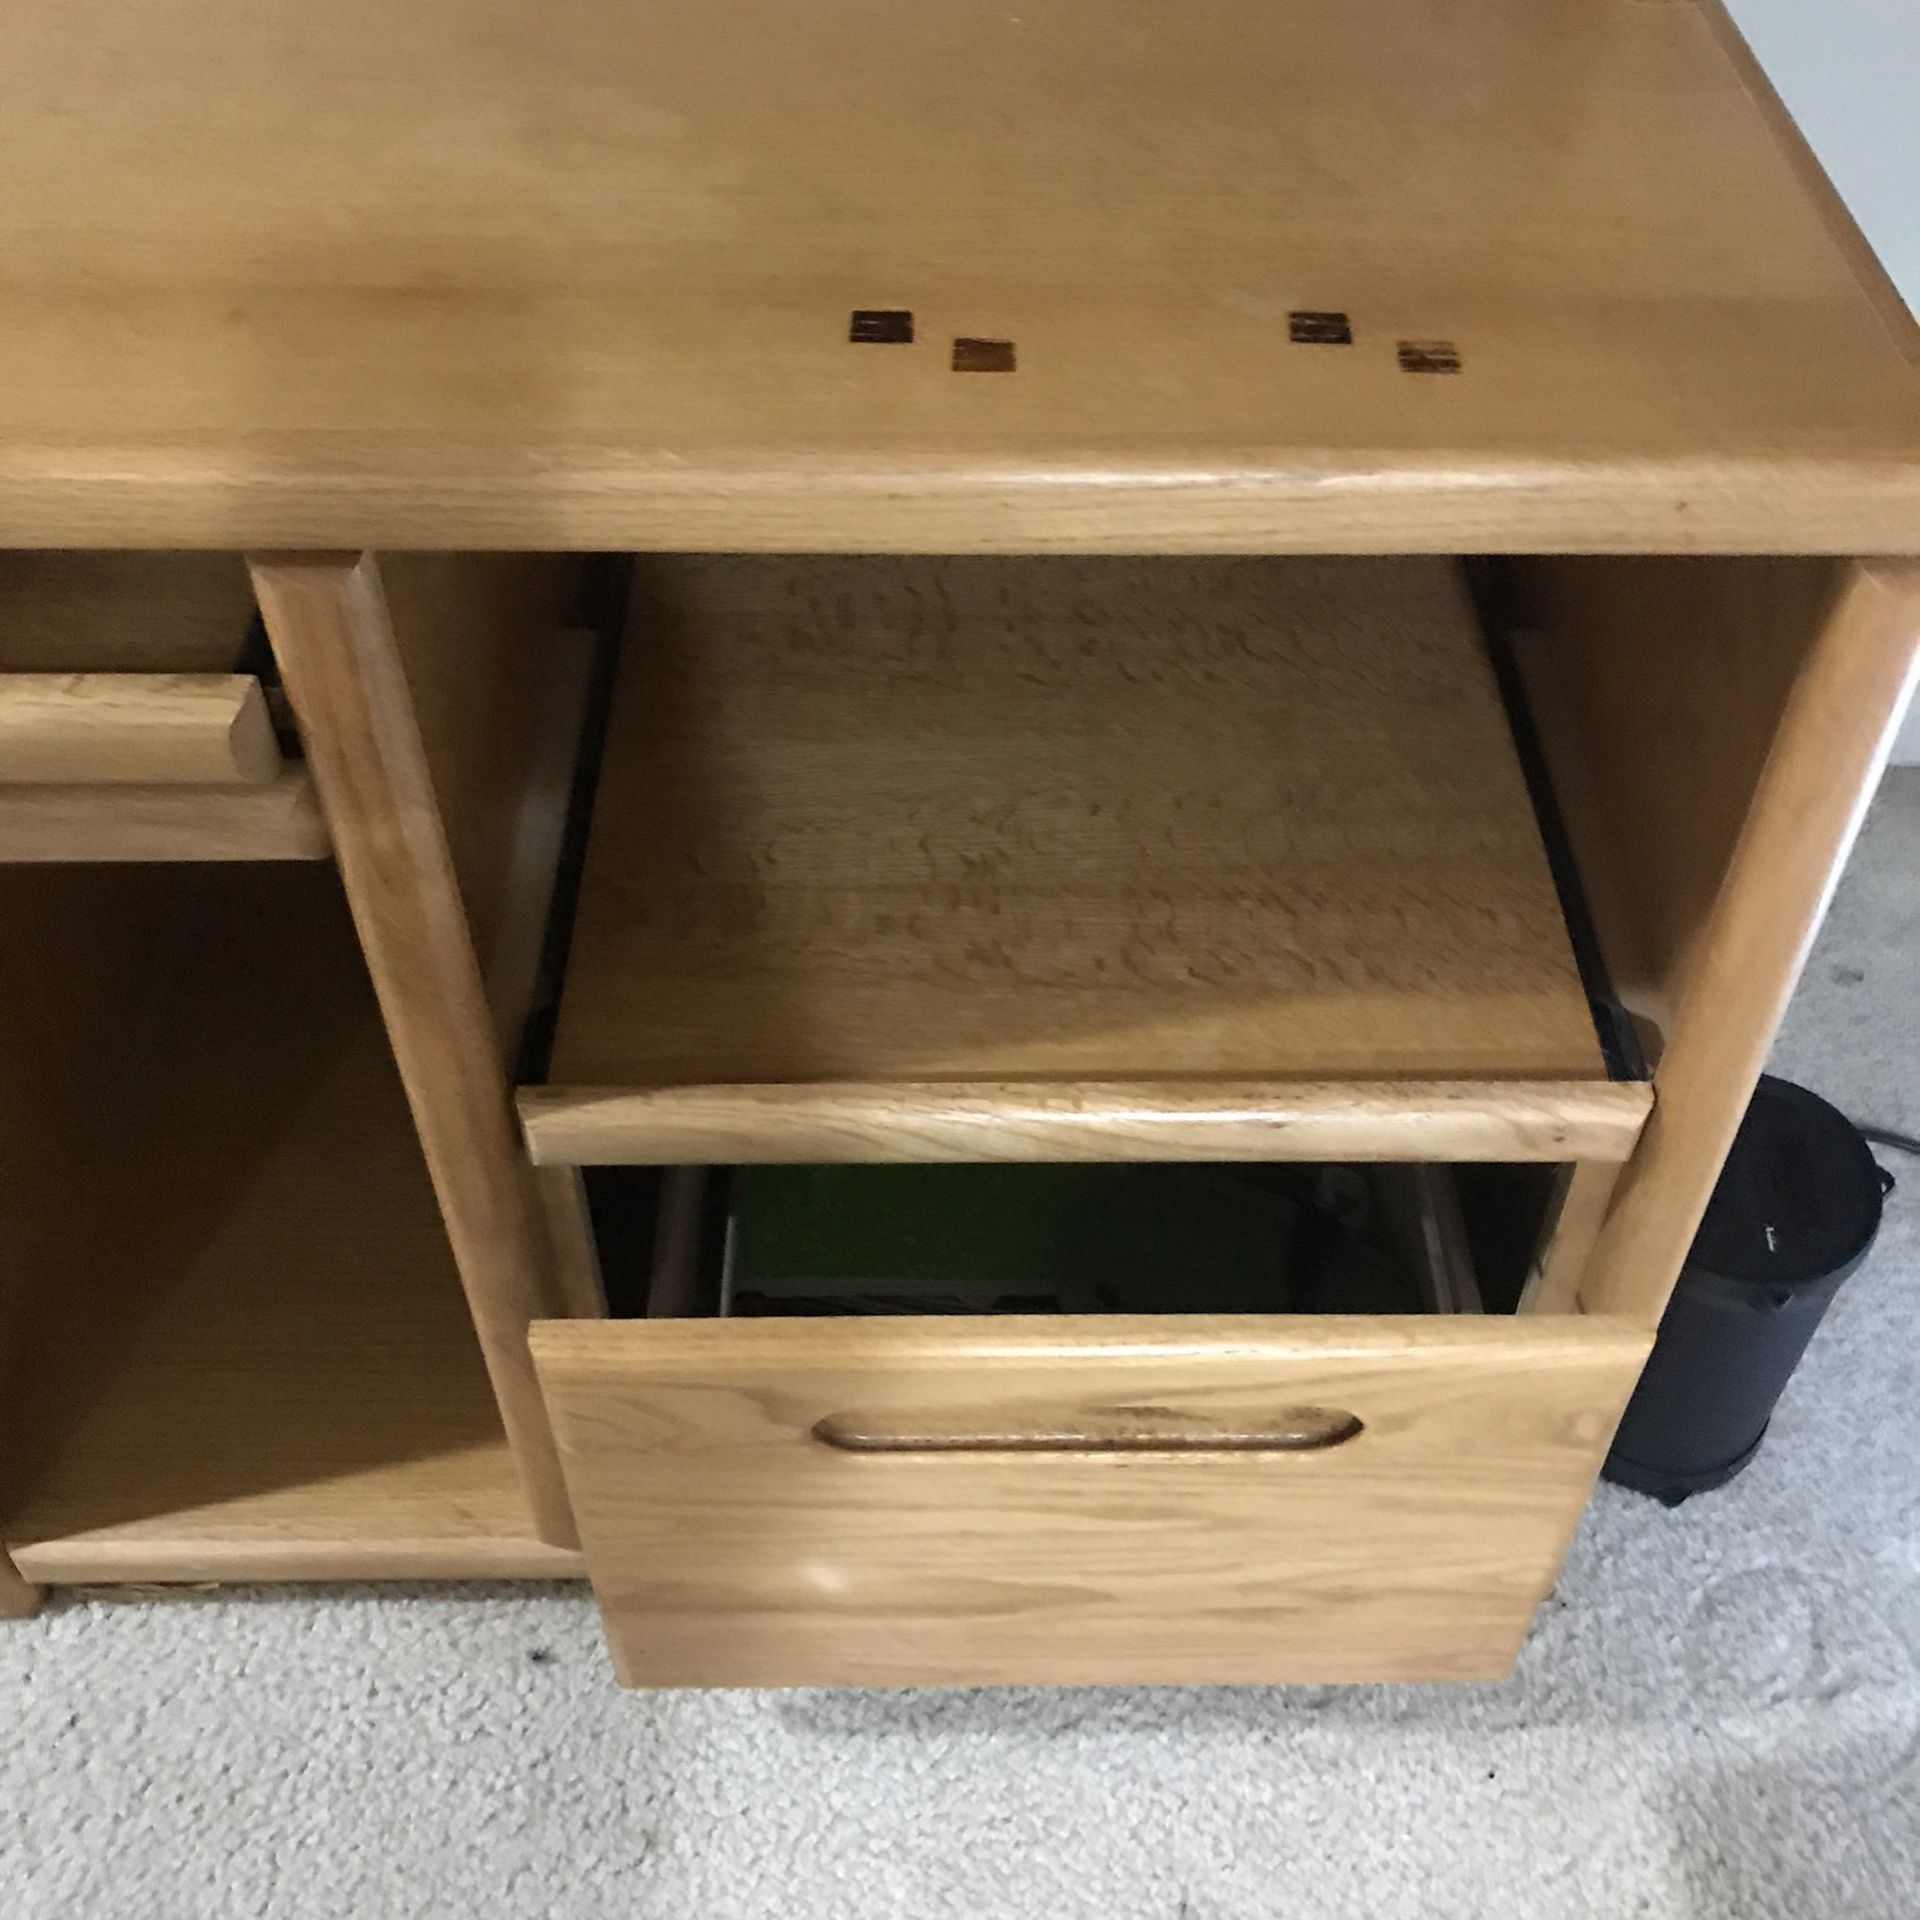 Computer Desk, Can Be Used For Virtual School Lessons , Working From Home, It Has A Top Cabinets, A Draw, another Pull Out Desk, Local Curbside Picku